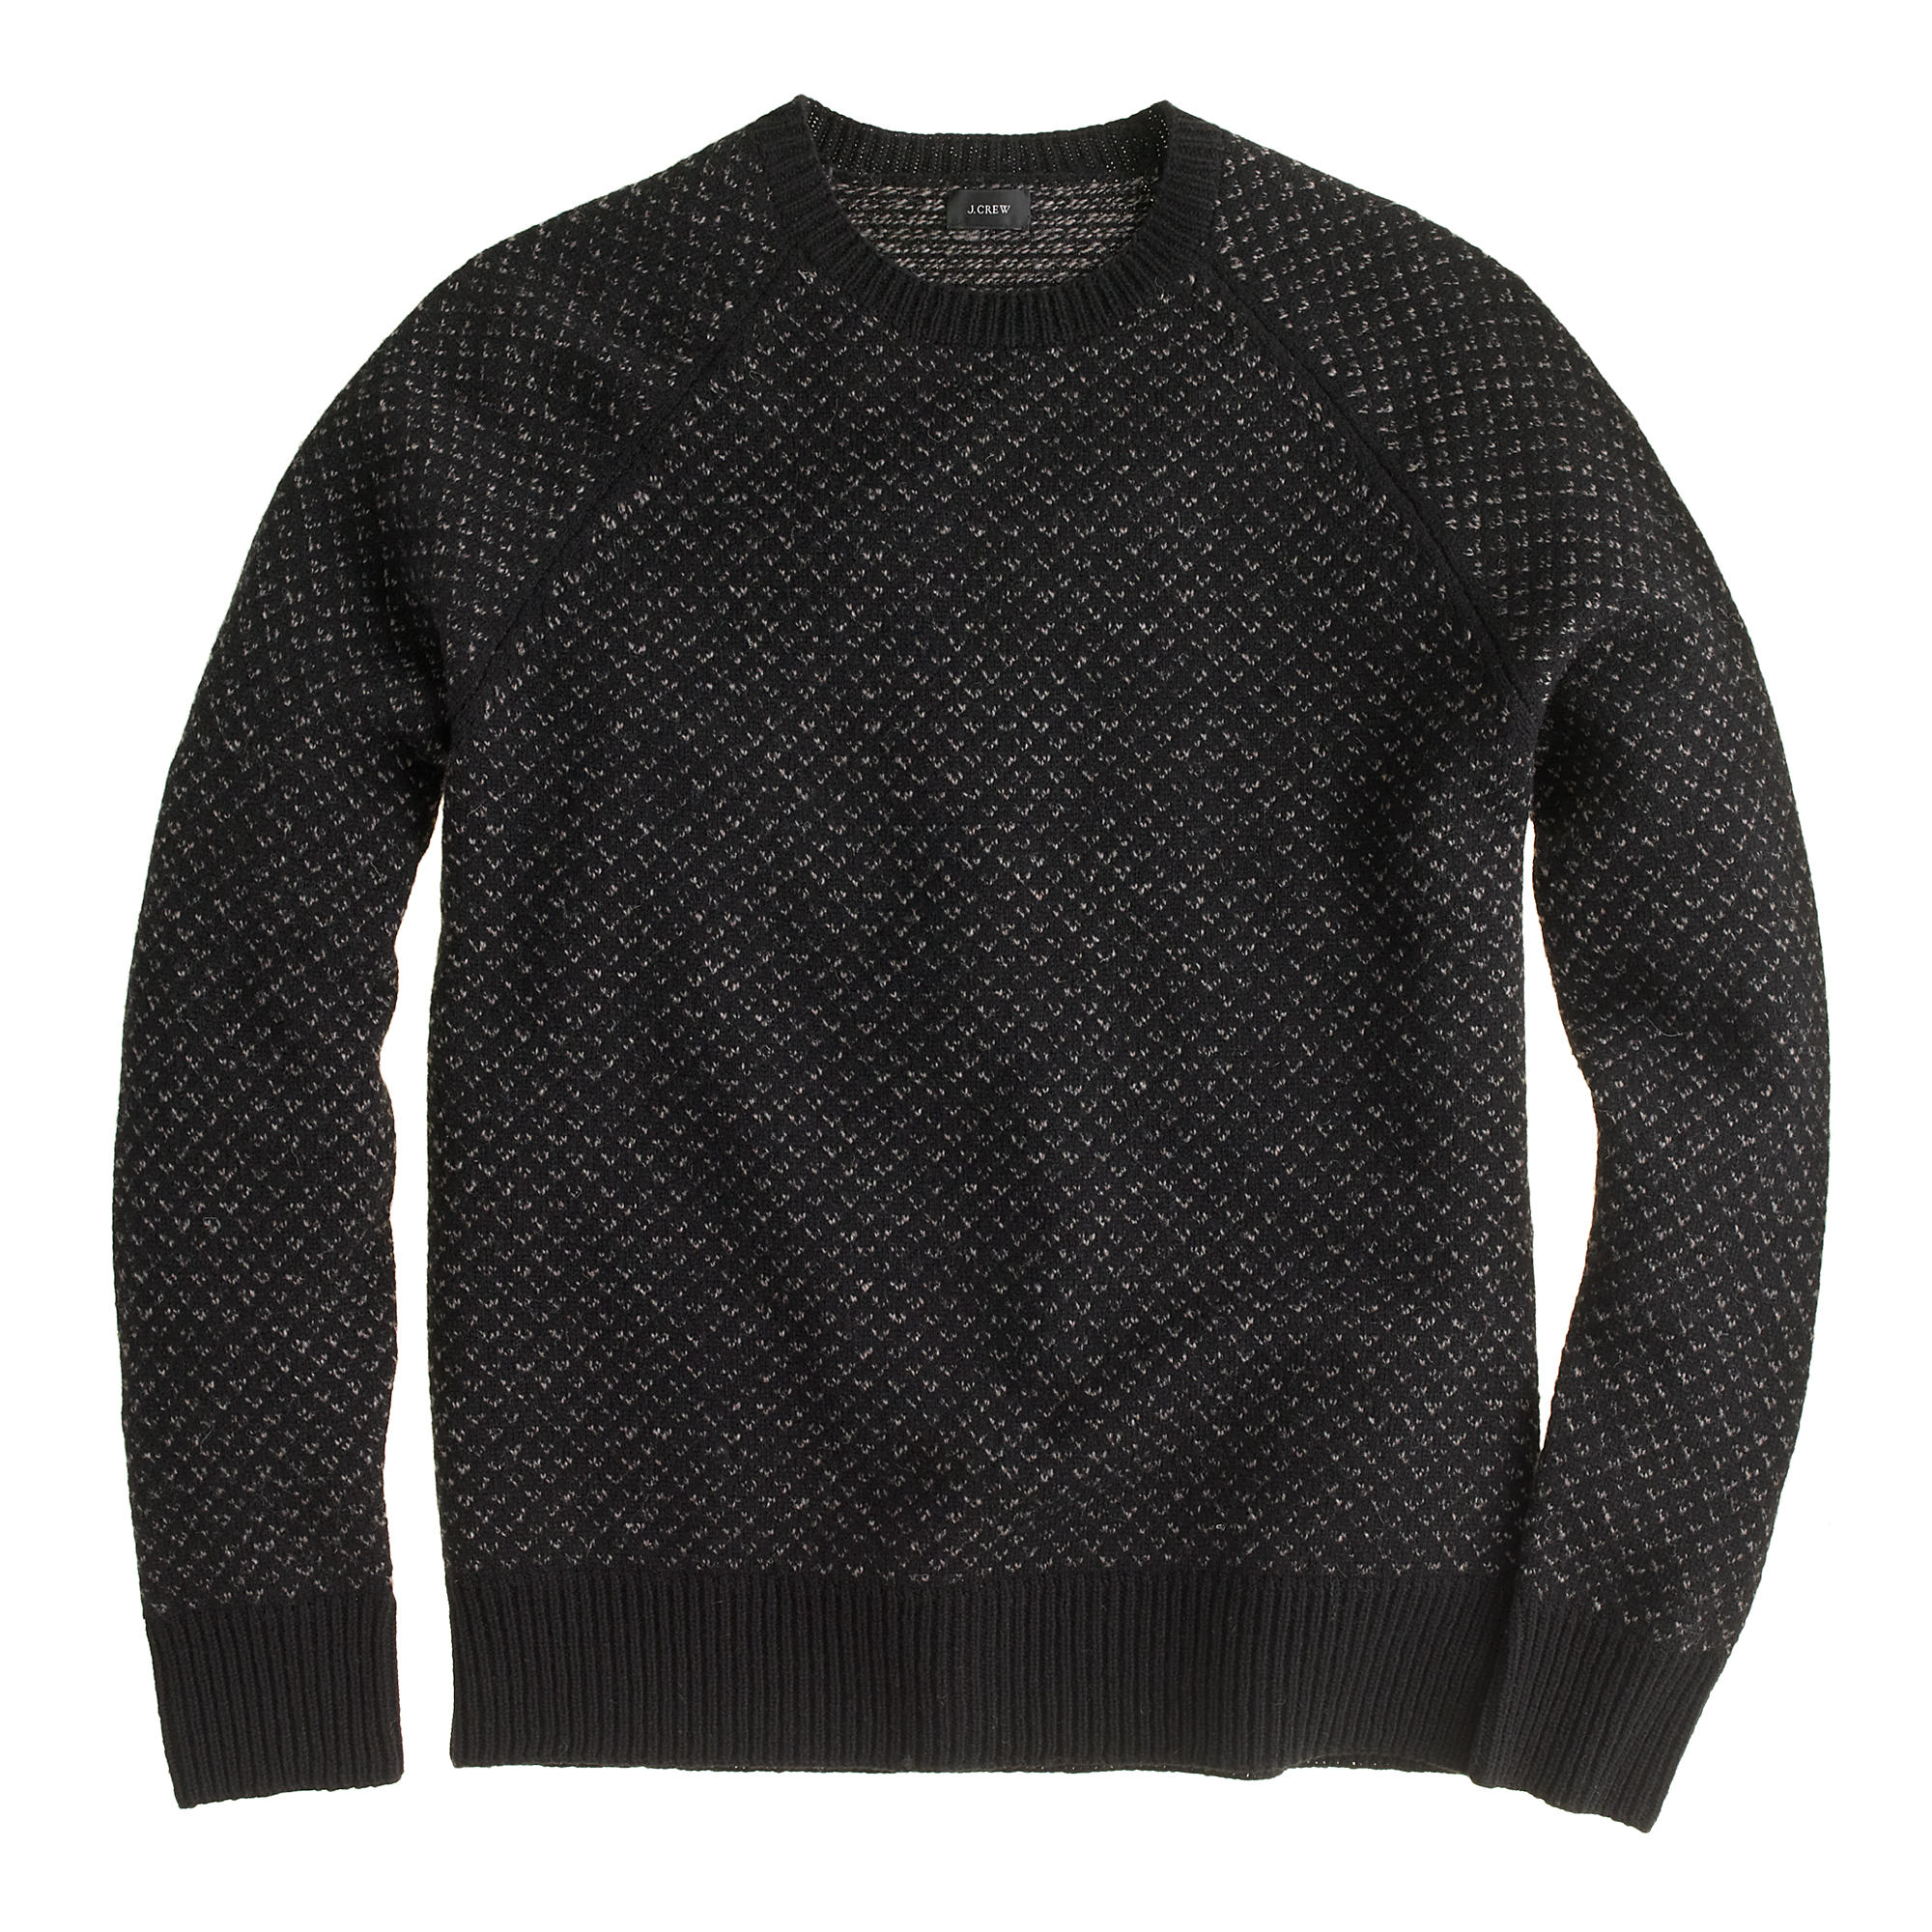 J.Crew Lambswool Bird's-Eye Sweater | 10 Fall Wardrobe Essentials for Men